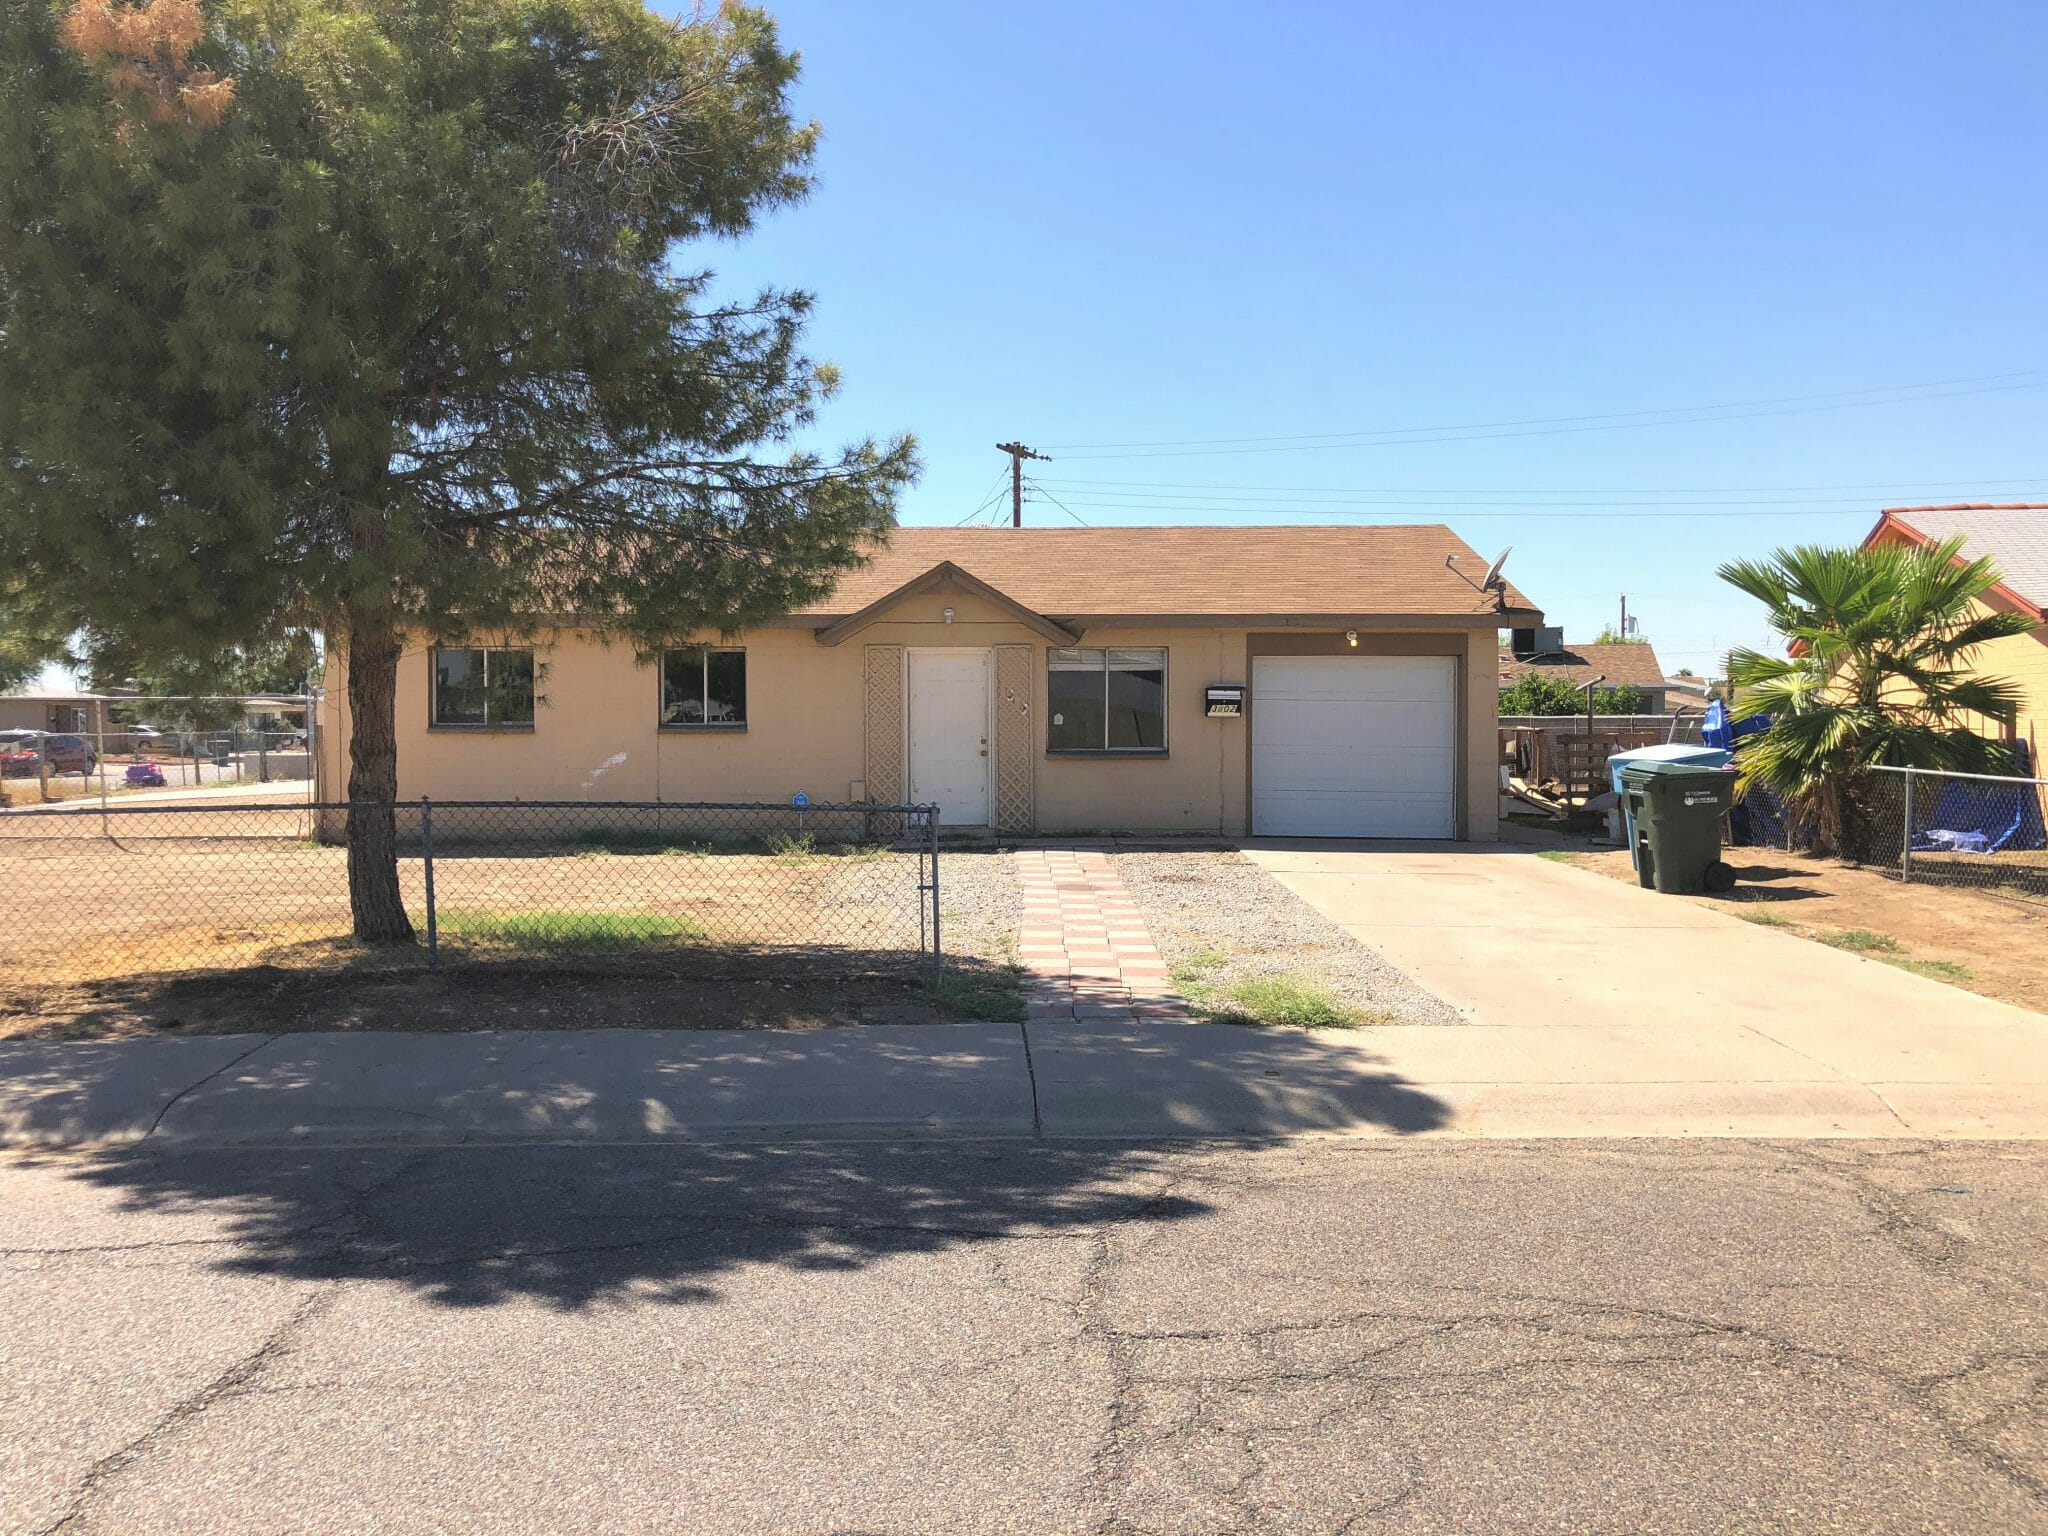 3802 N 80TH Avenue, Phoenix, AZ, 85033